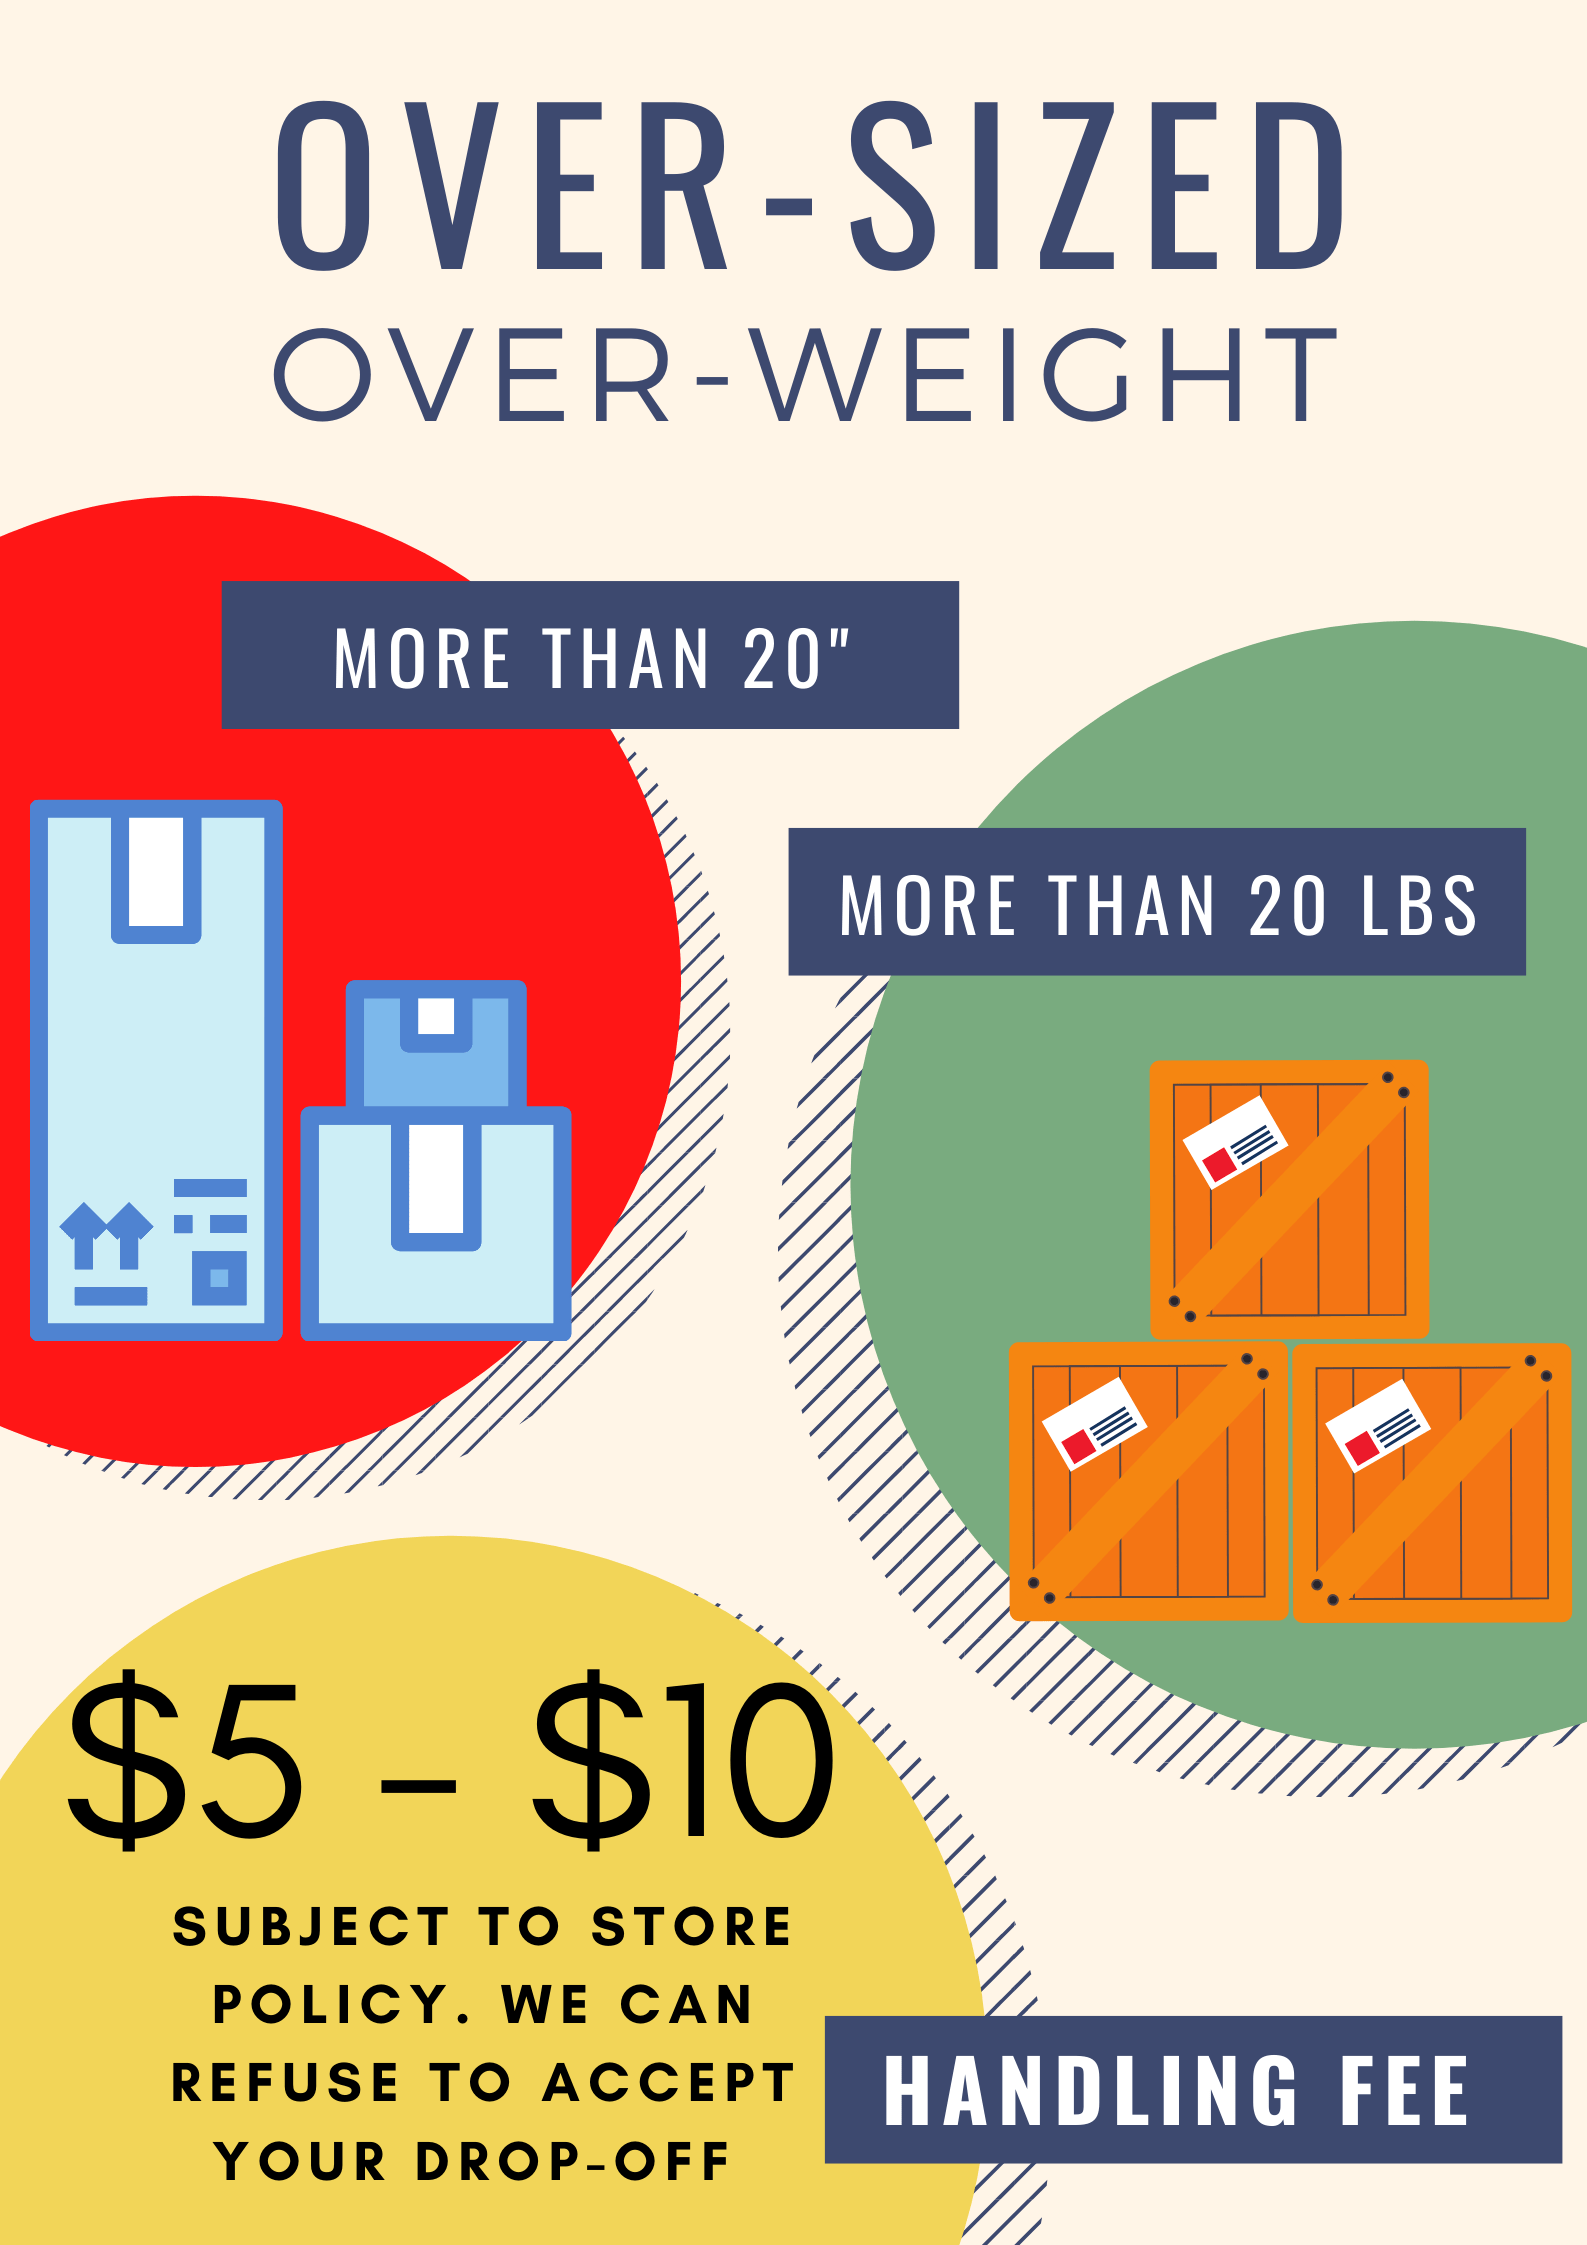 over-size drop-offs